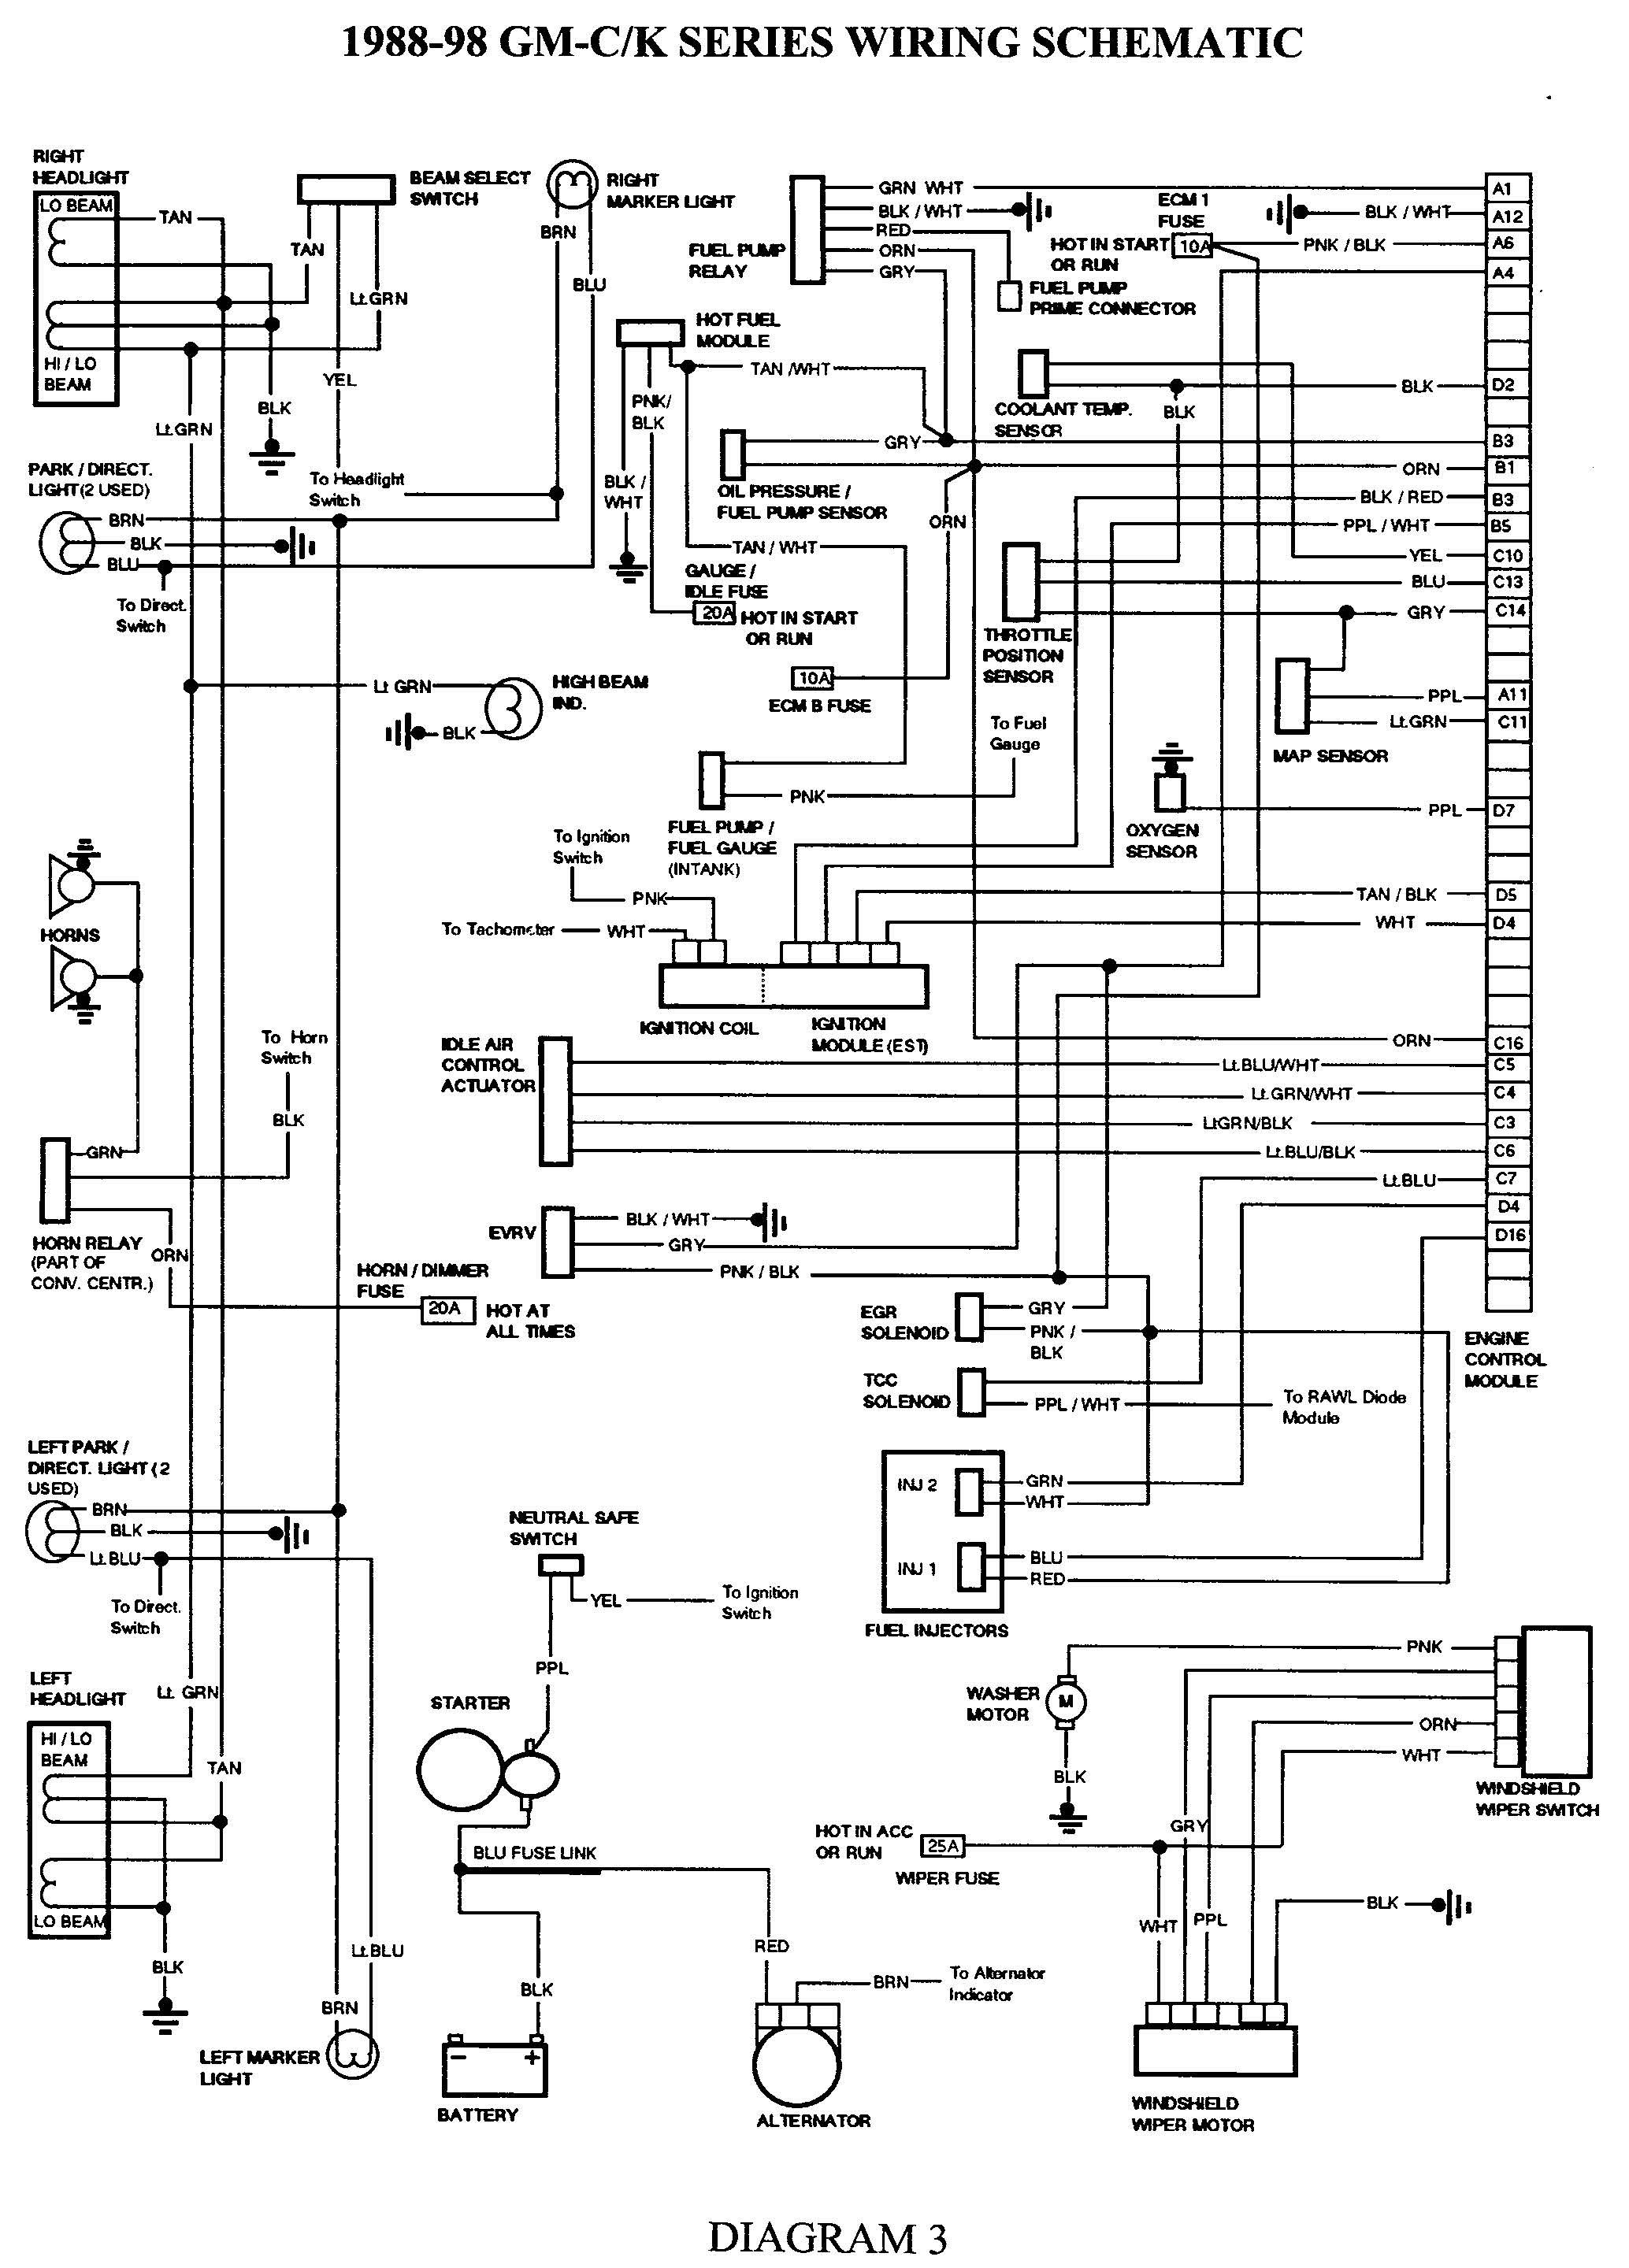 1986 chevrolet c10 5 7 v8 engine wiring diagram chevrolet c 1500 got a 88 chevy with a 4 3l engine and i cant [ 2068 x 2880 Pixel ]